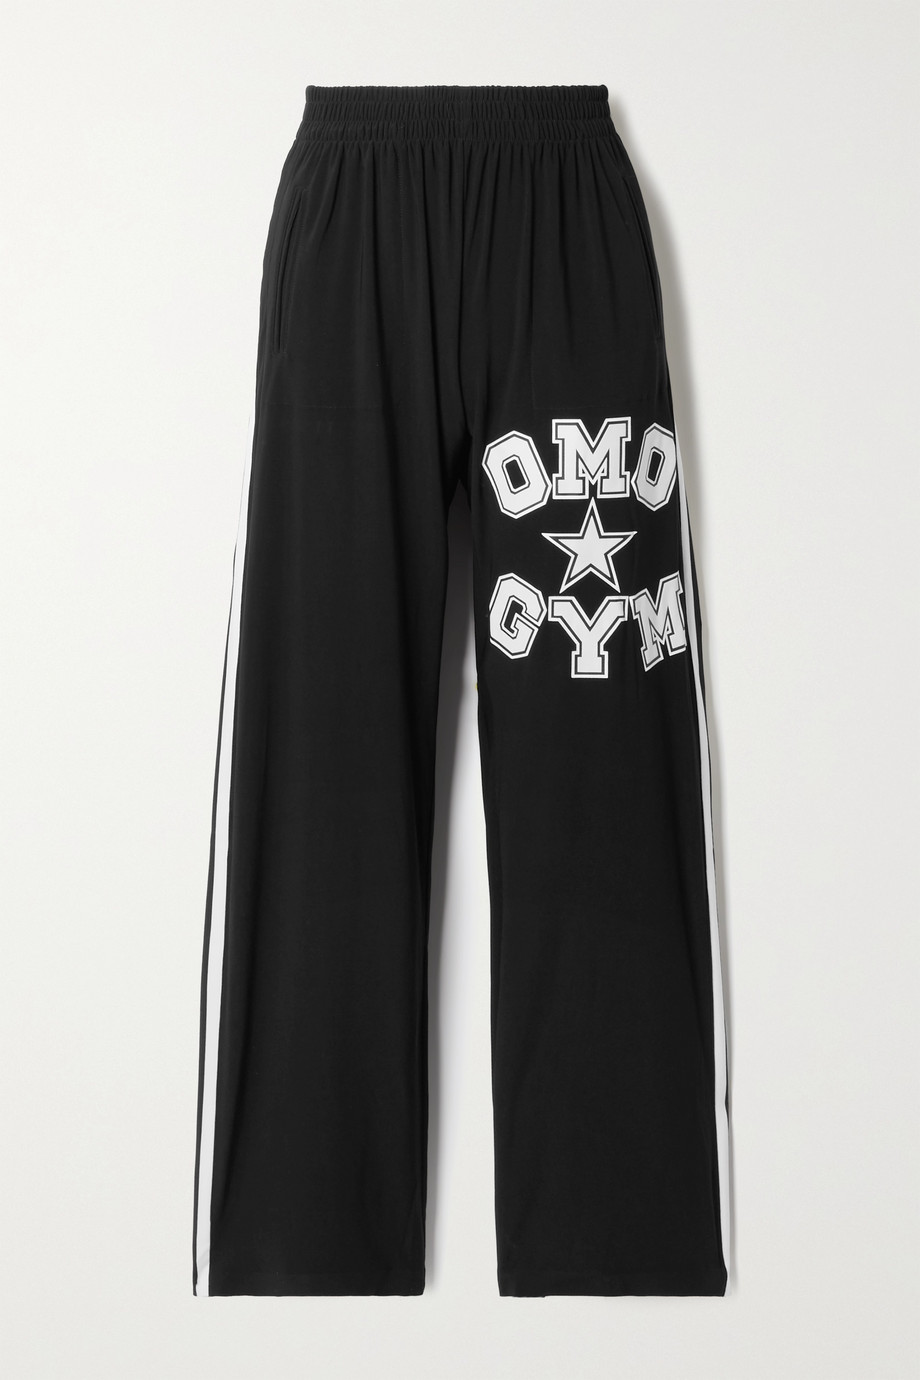 NORMA KAMALI OMO striped printed stretch-jersey track pants